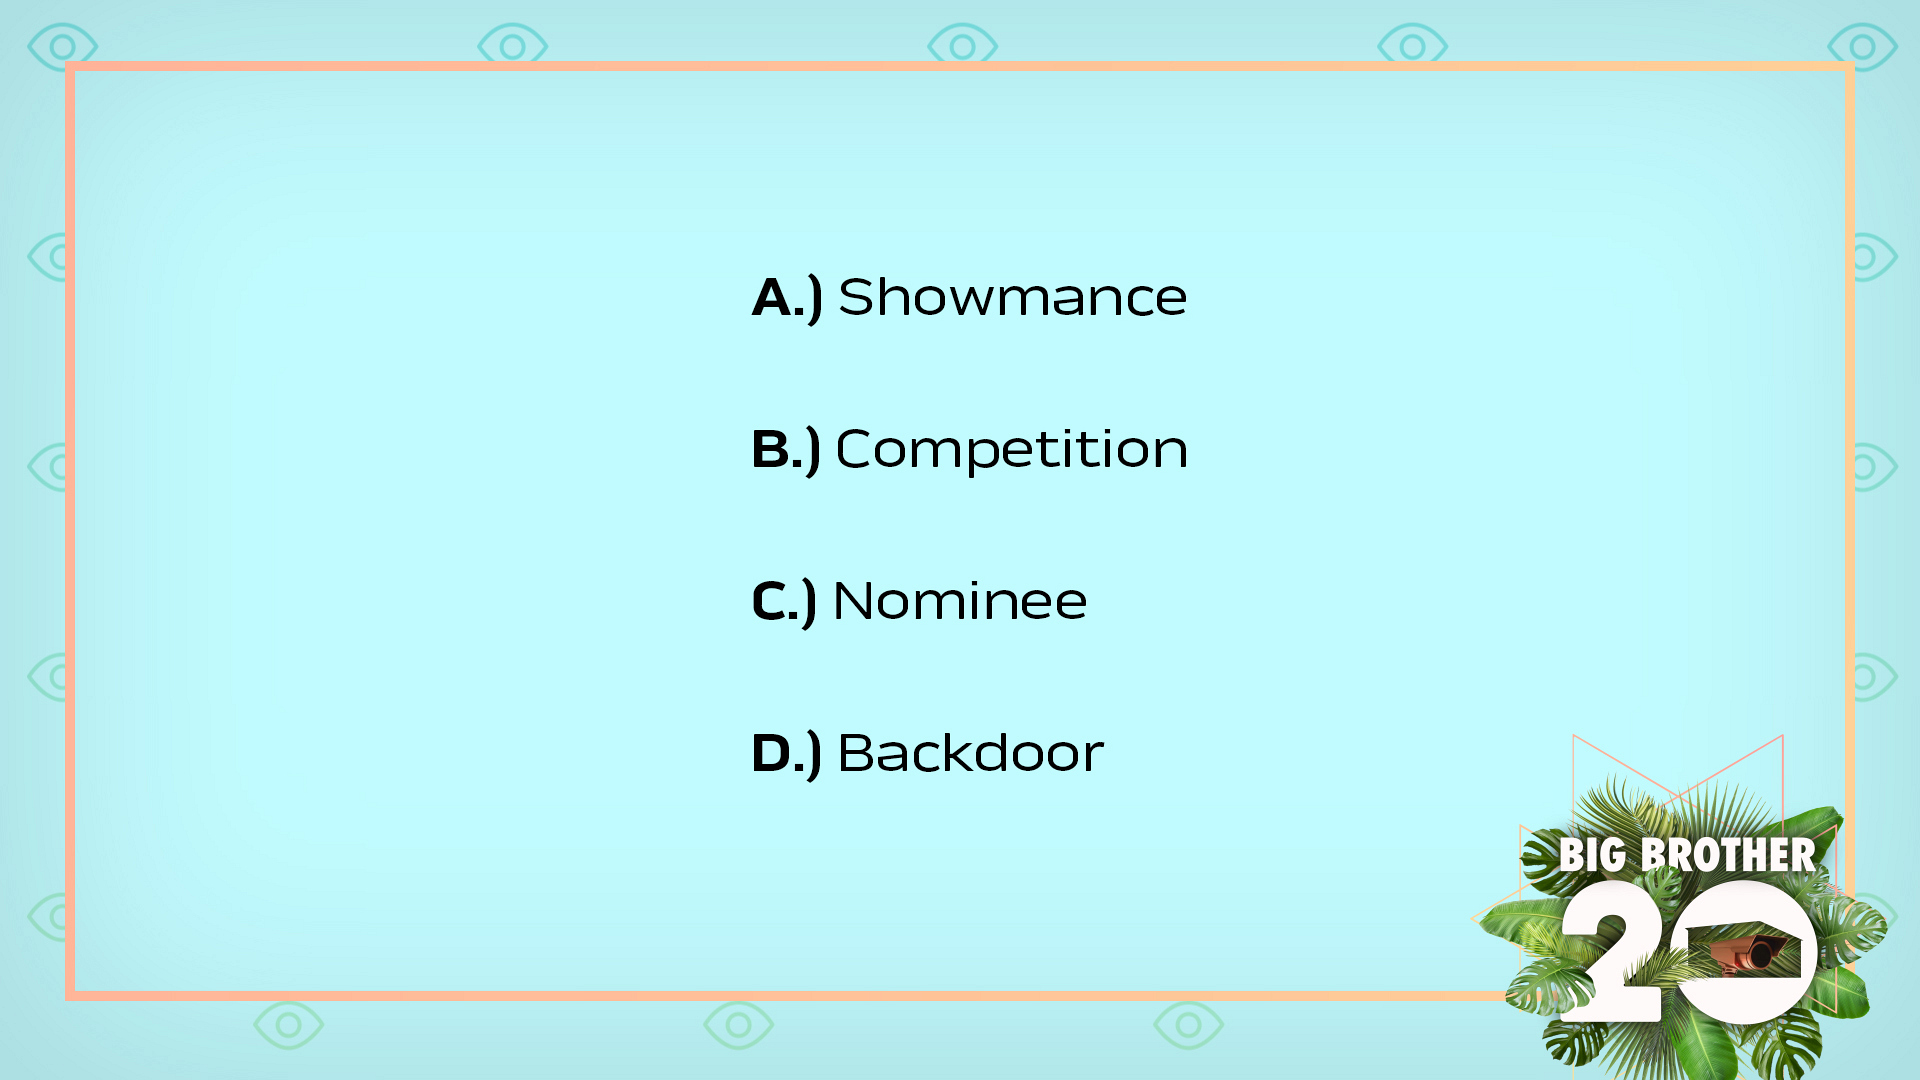 What was the final answer in the BB Hacker word scramble competition?